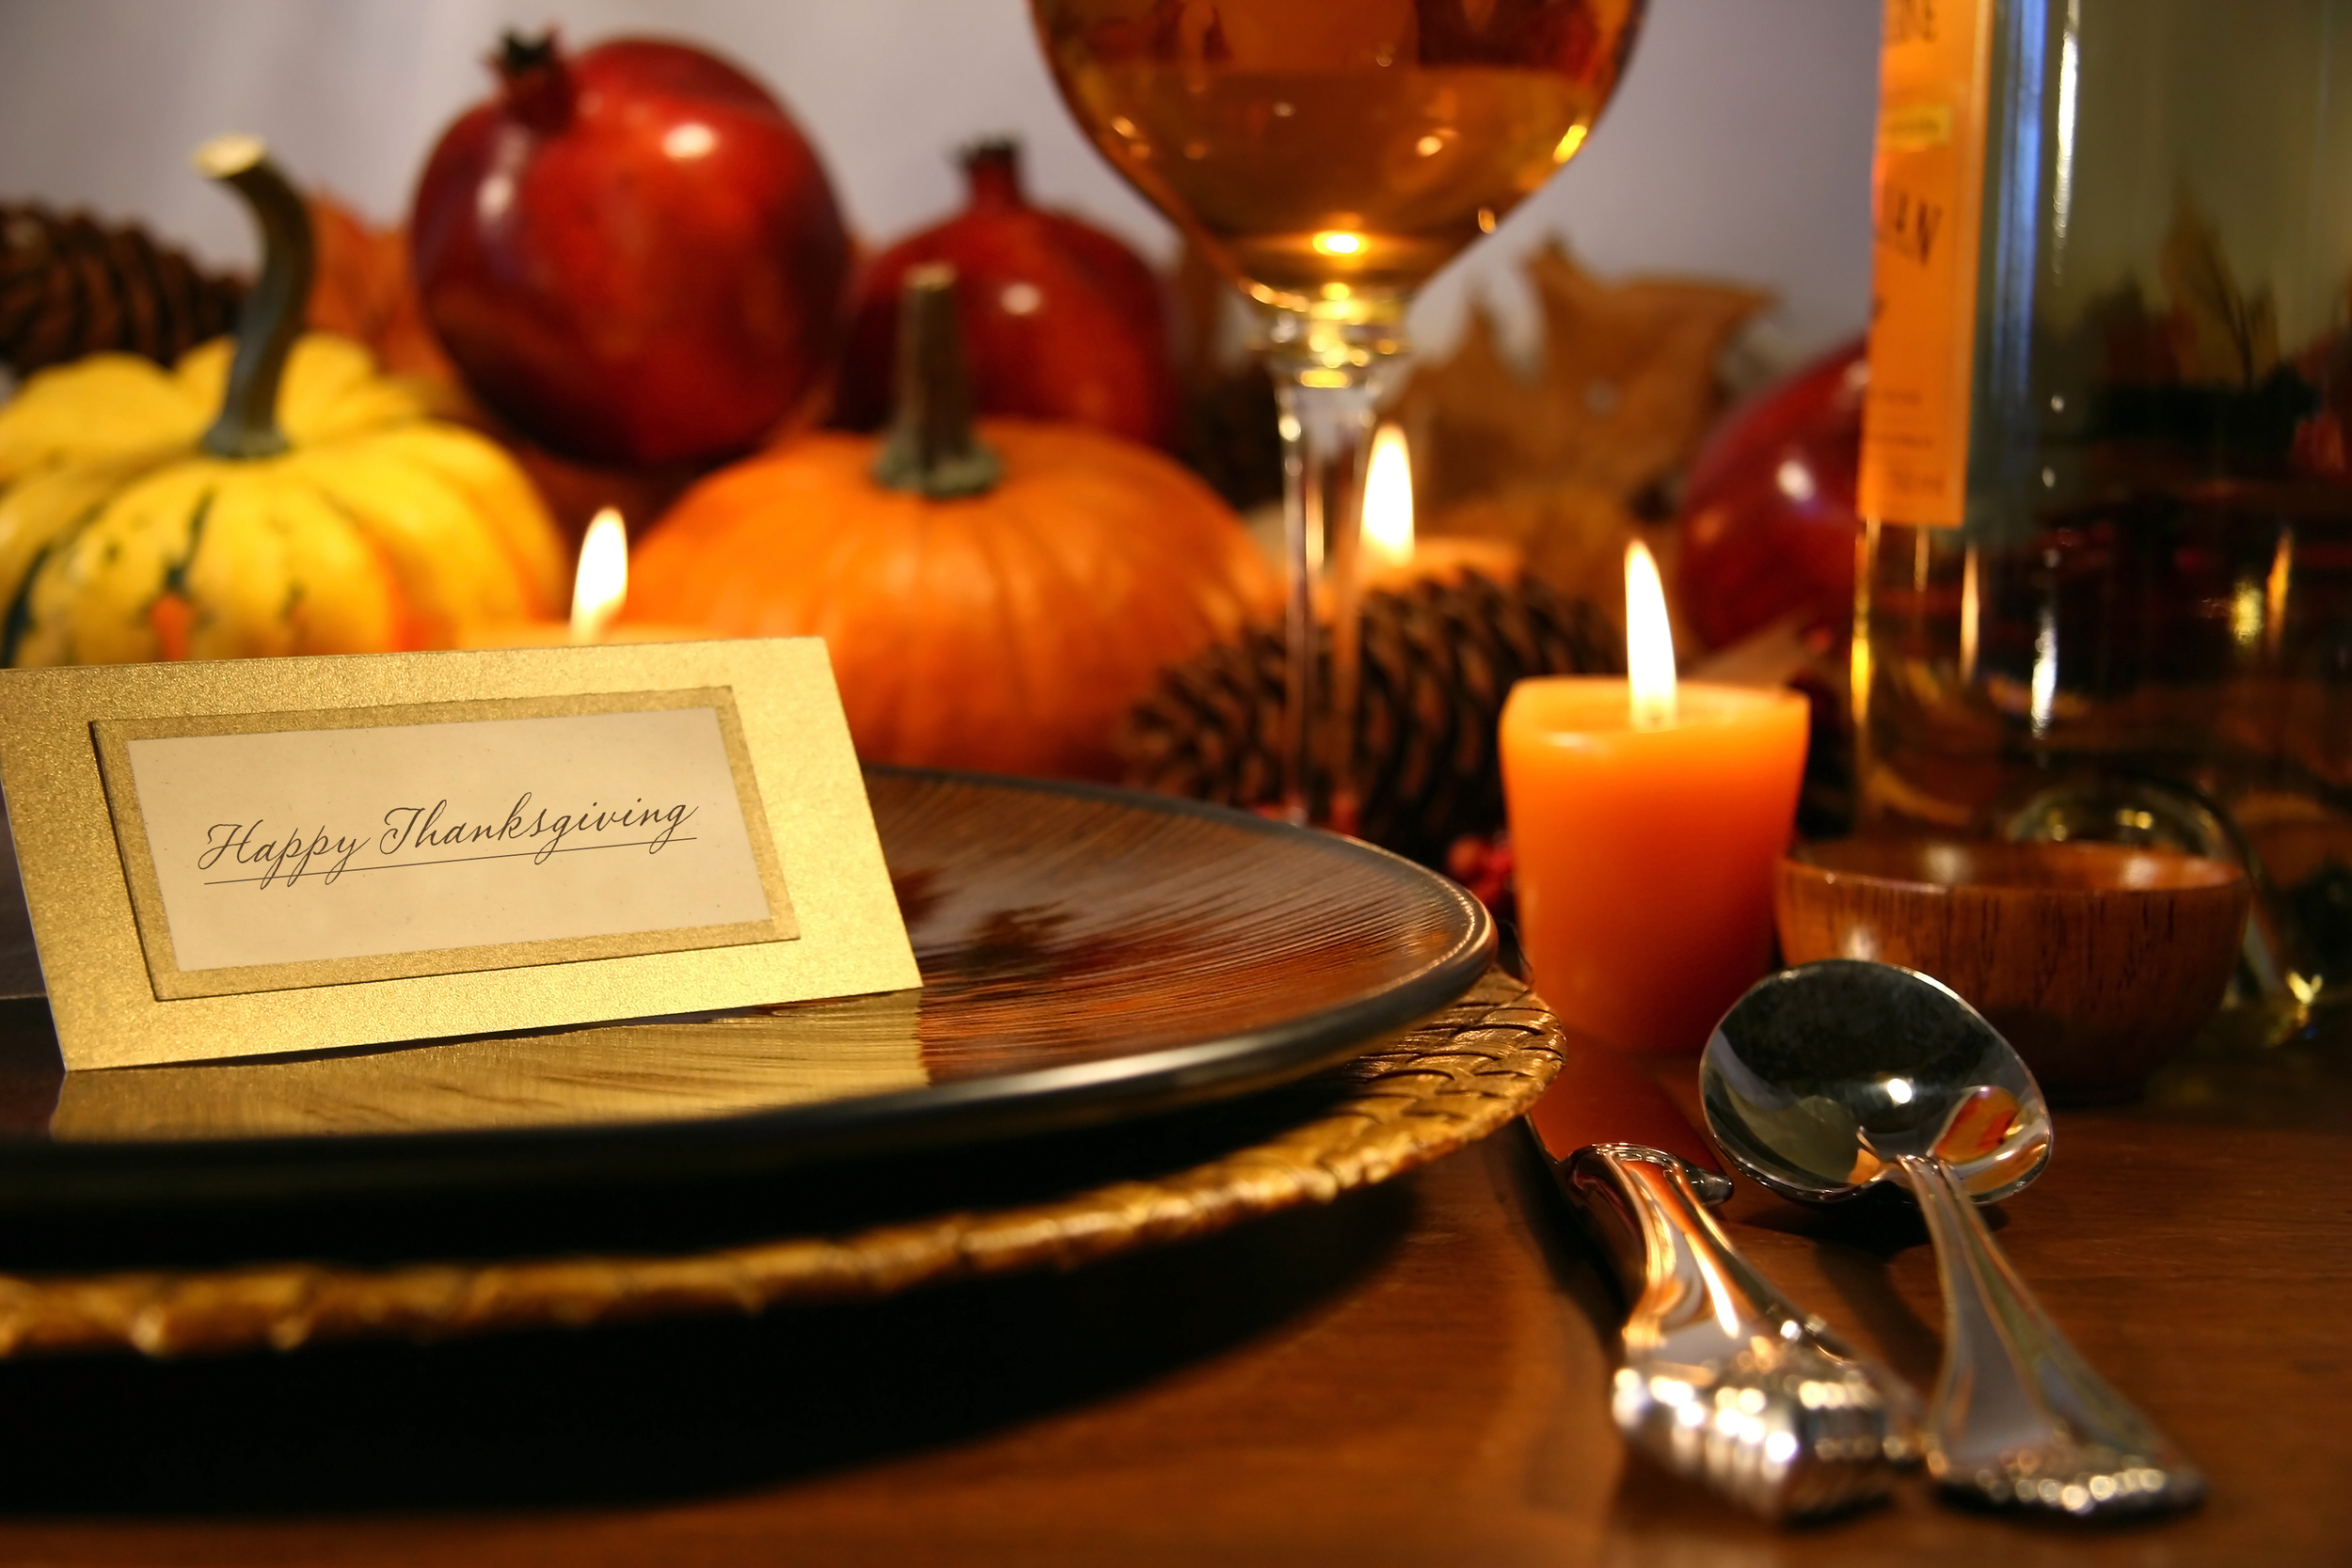 Is this what Thanksgiving is going to look like at your house?